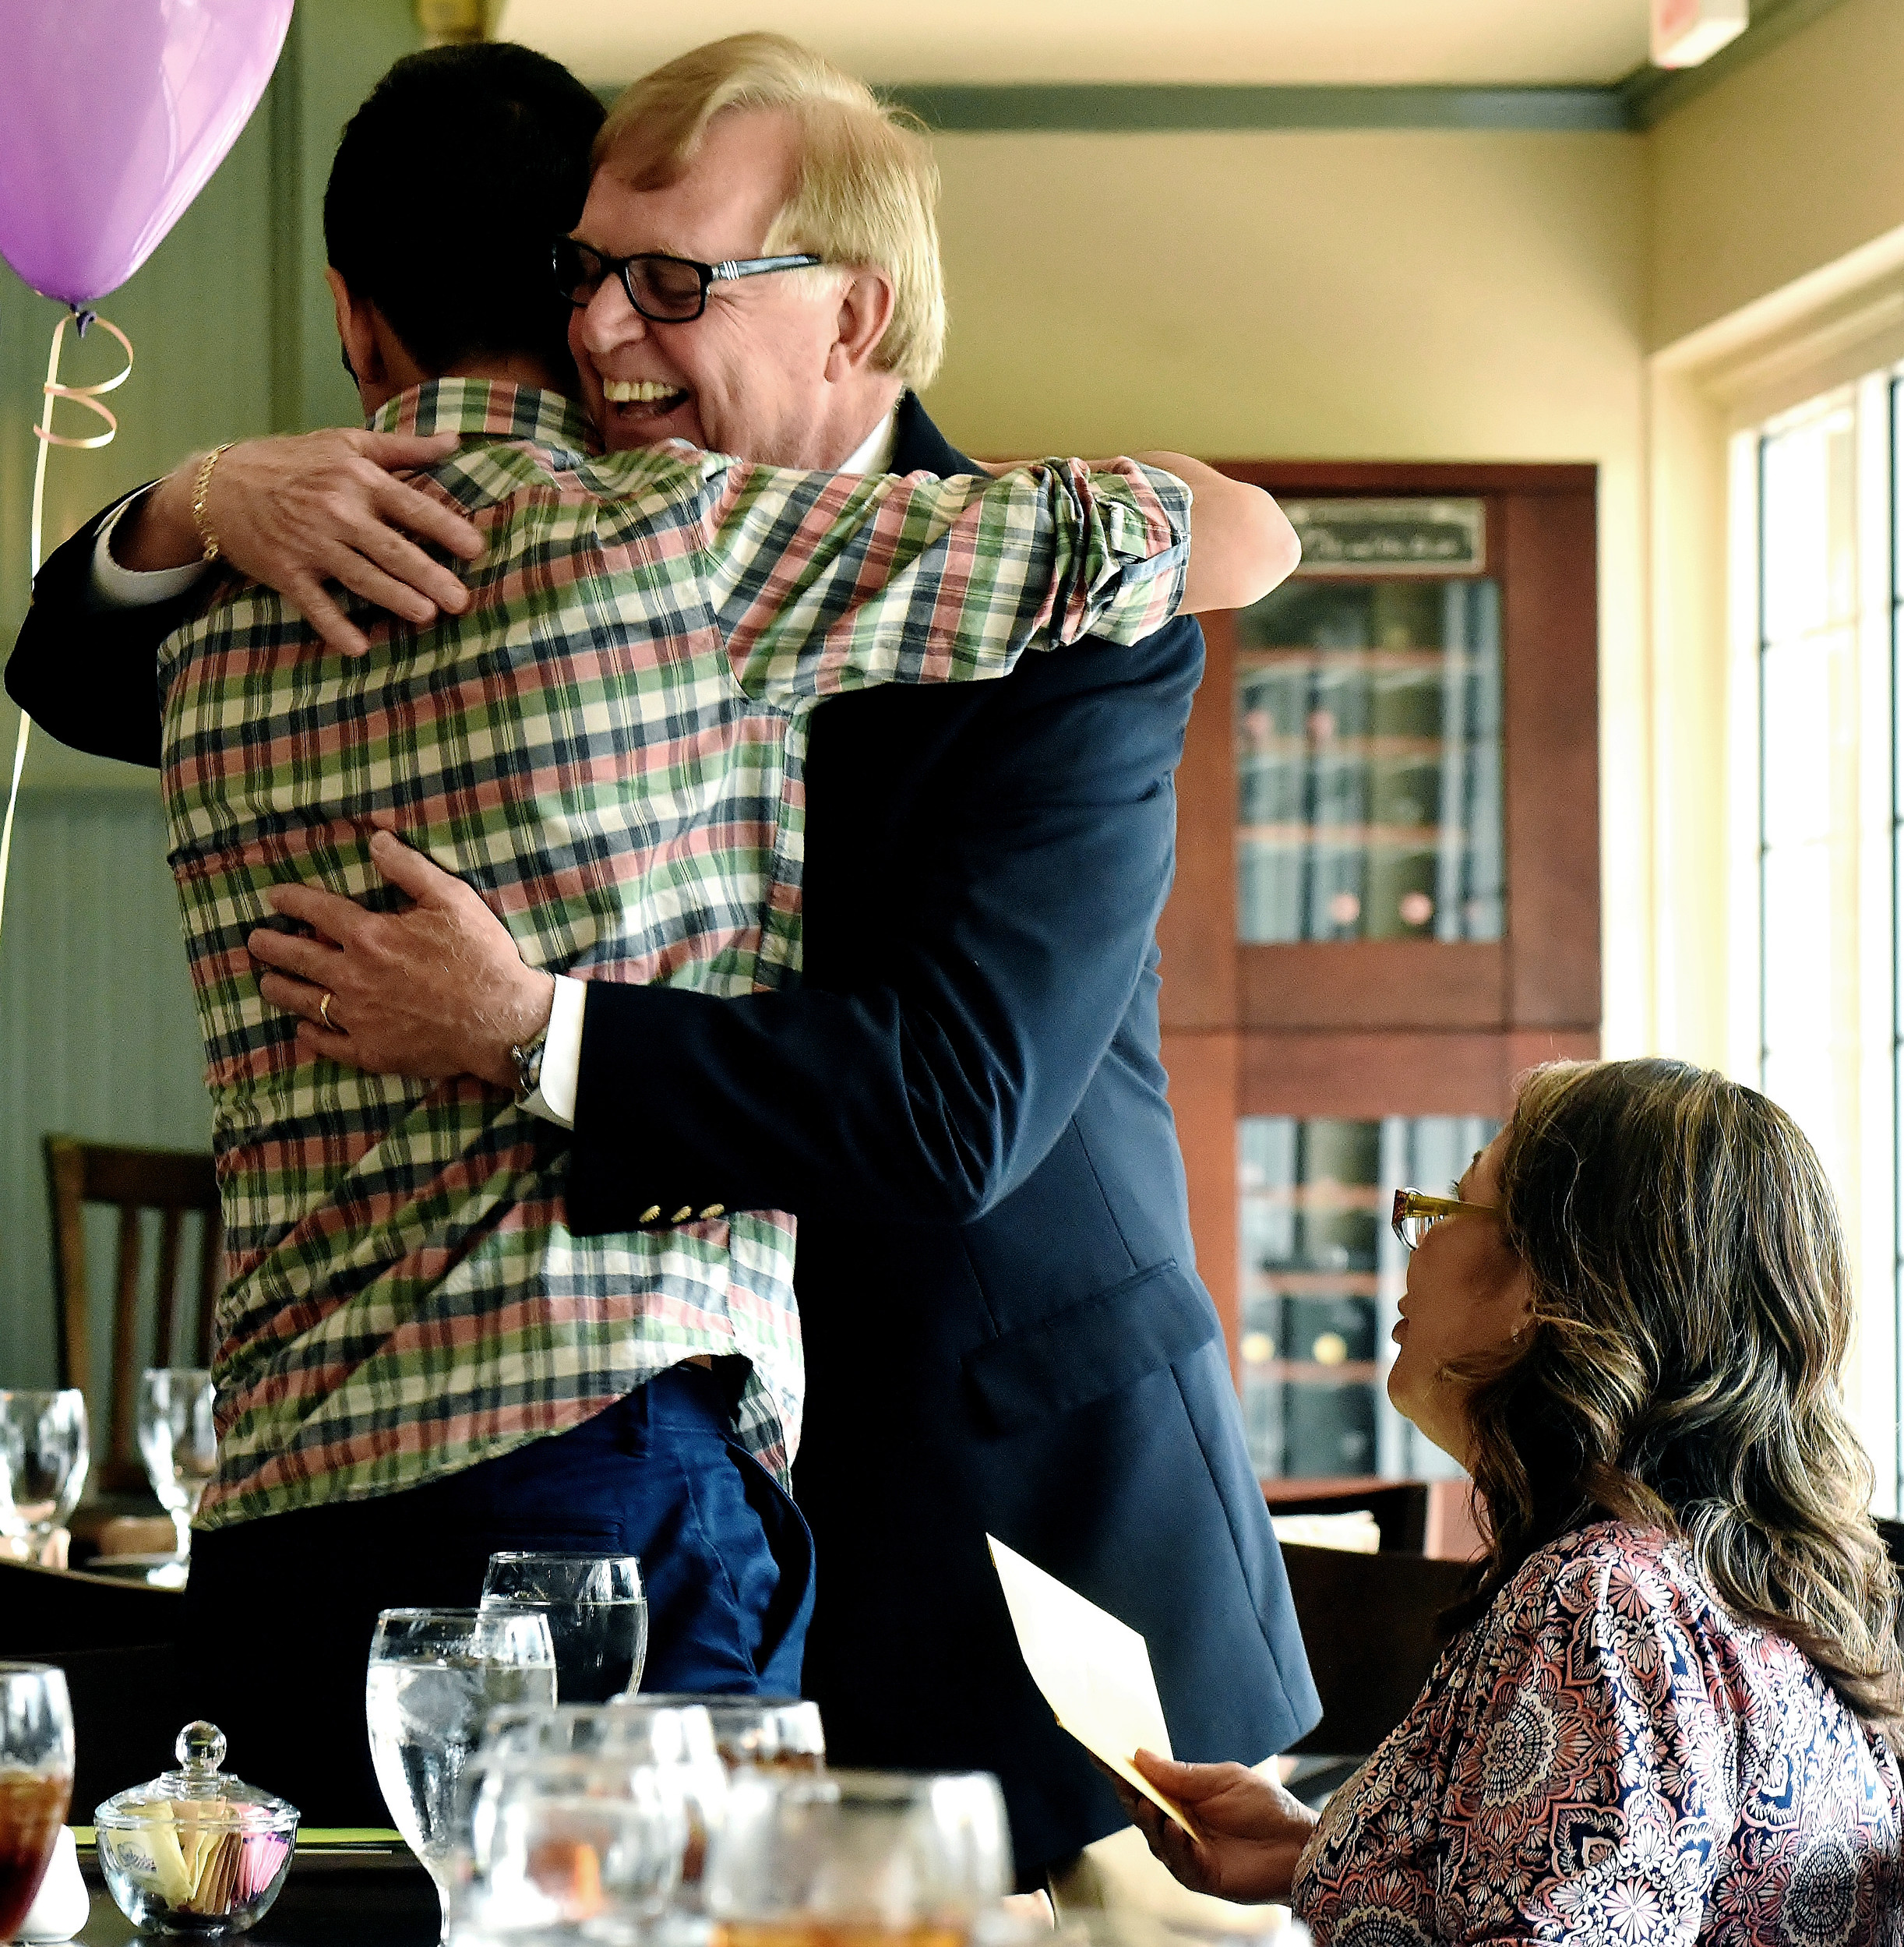 Retired Cartersville School Superintendent Dr. Howard Hinesley gives GateKey Scholar Abel Espinoza a hug after congratulating him on being the first recipient of the Howard Hinesley Founder's Scholarship. Abel's mother, Esther Espinoza, looks on.